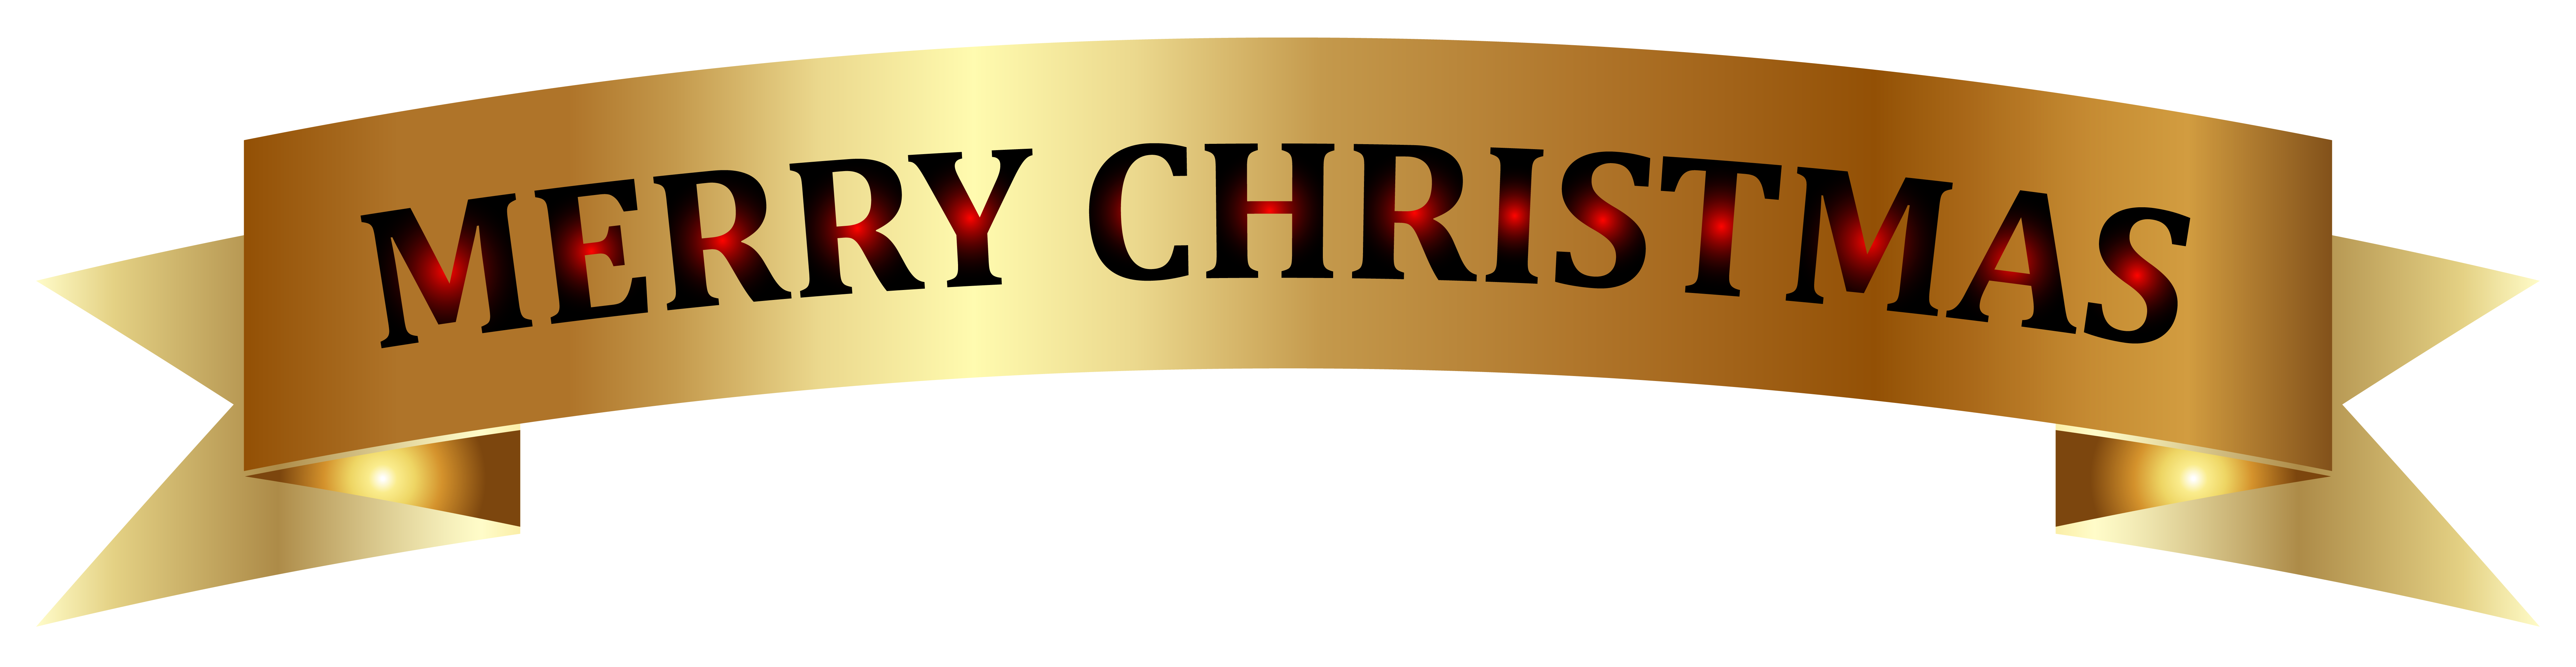 Christmas header clipart freeuse download december be merry banner. zoom. be merry printable banner. just ... freeuse download